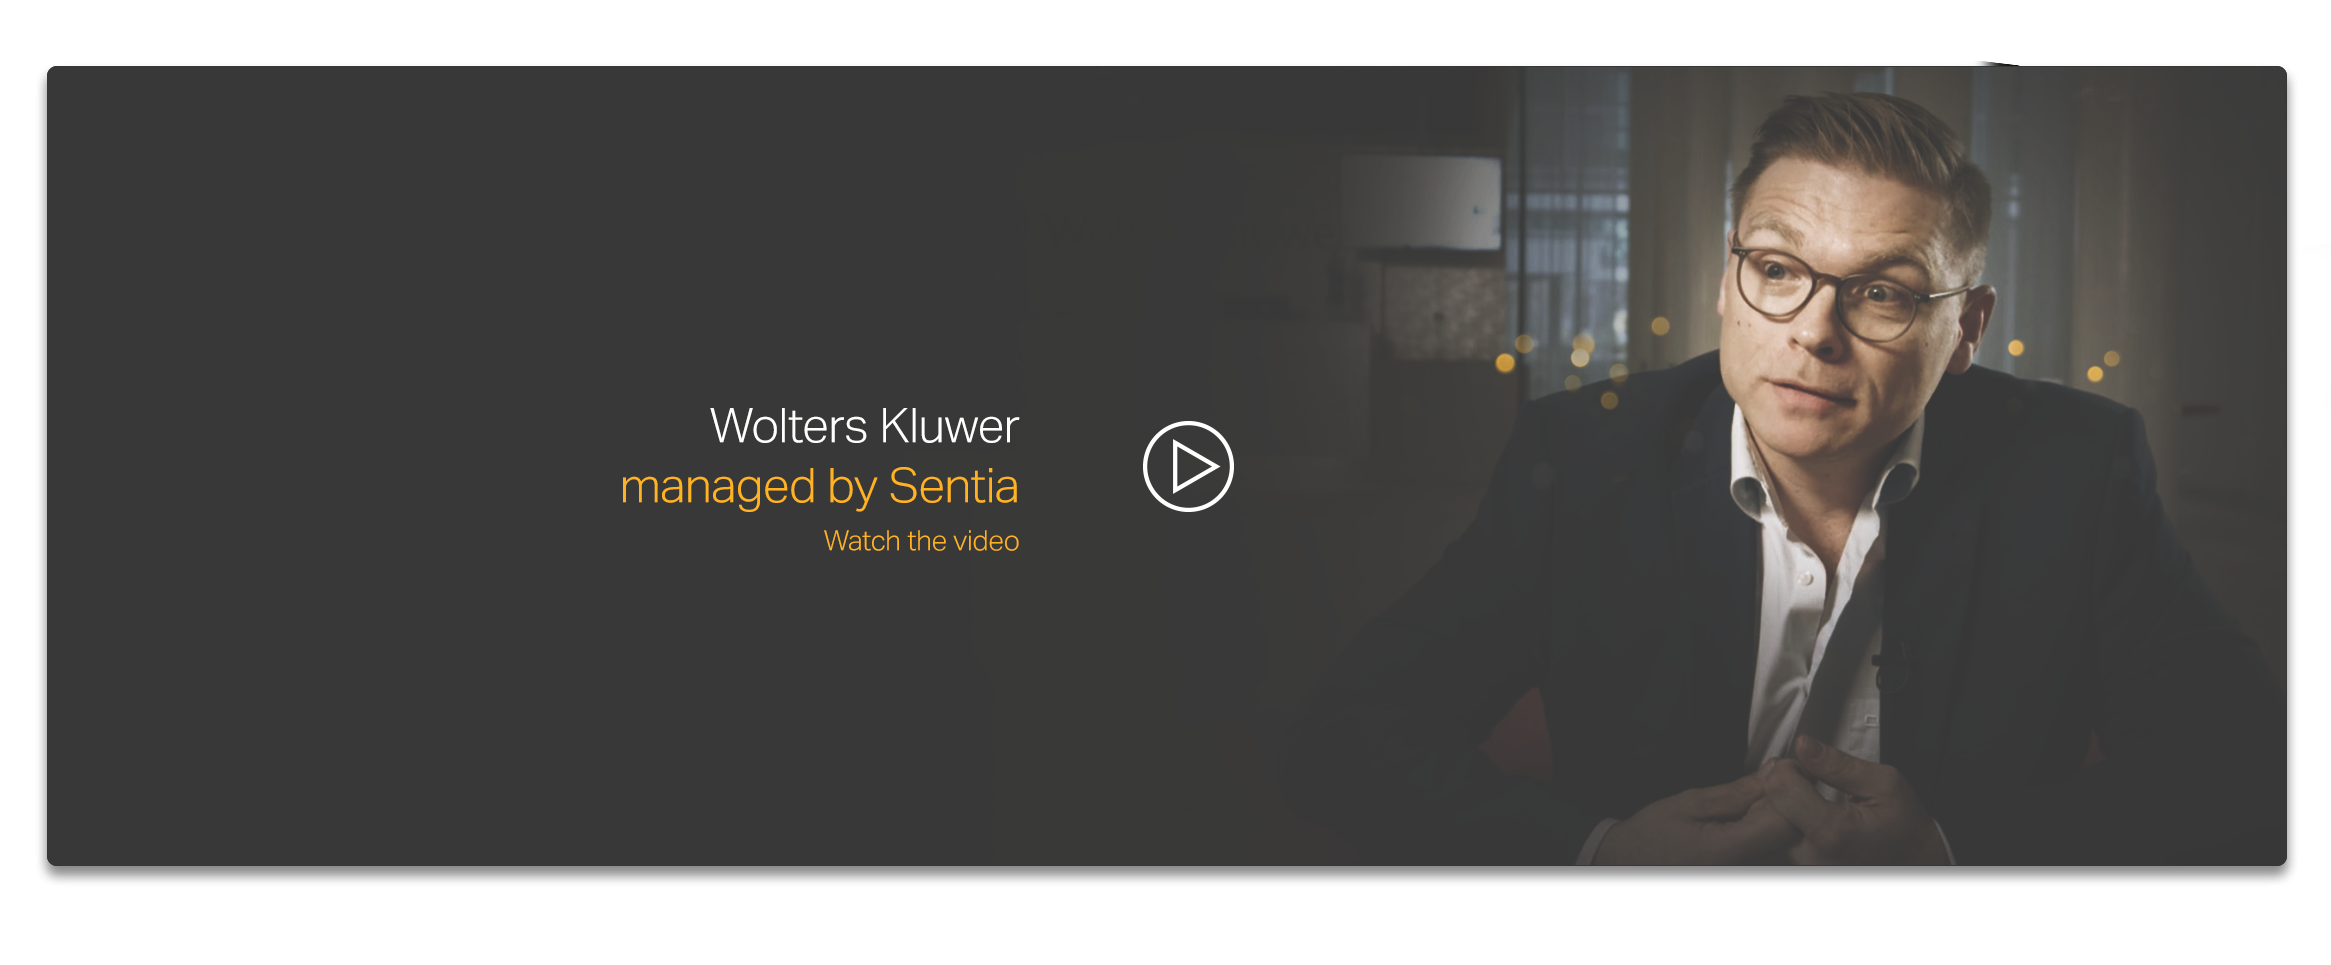 Wolters Kluwer Video Testimonial